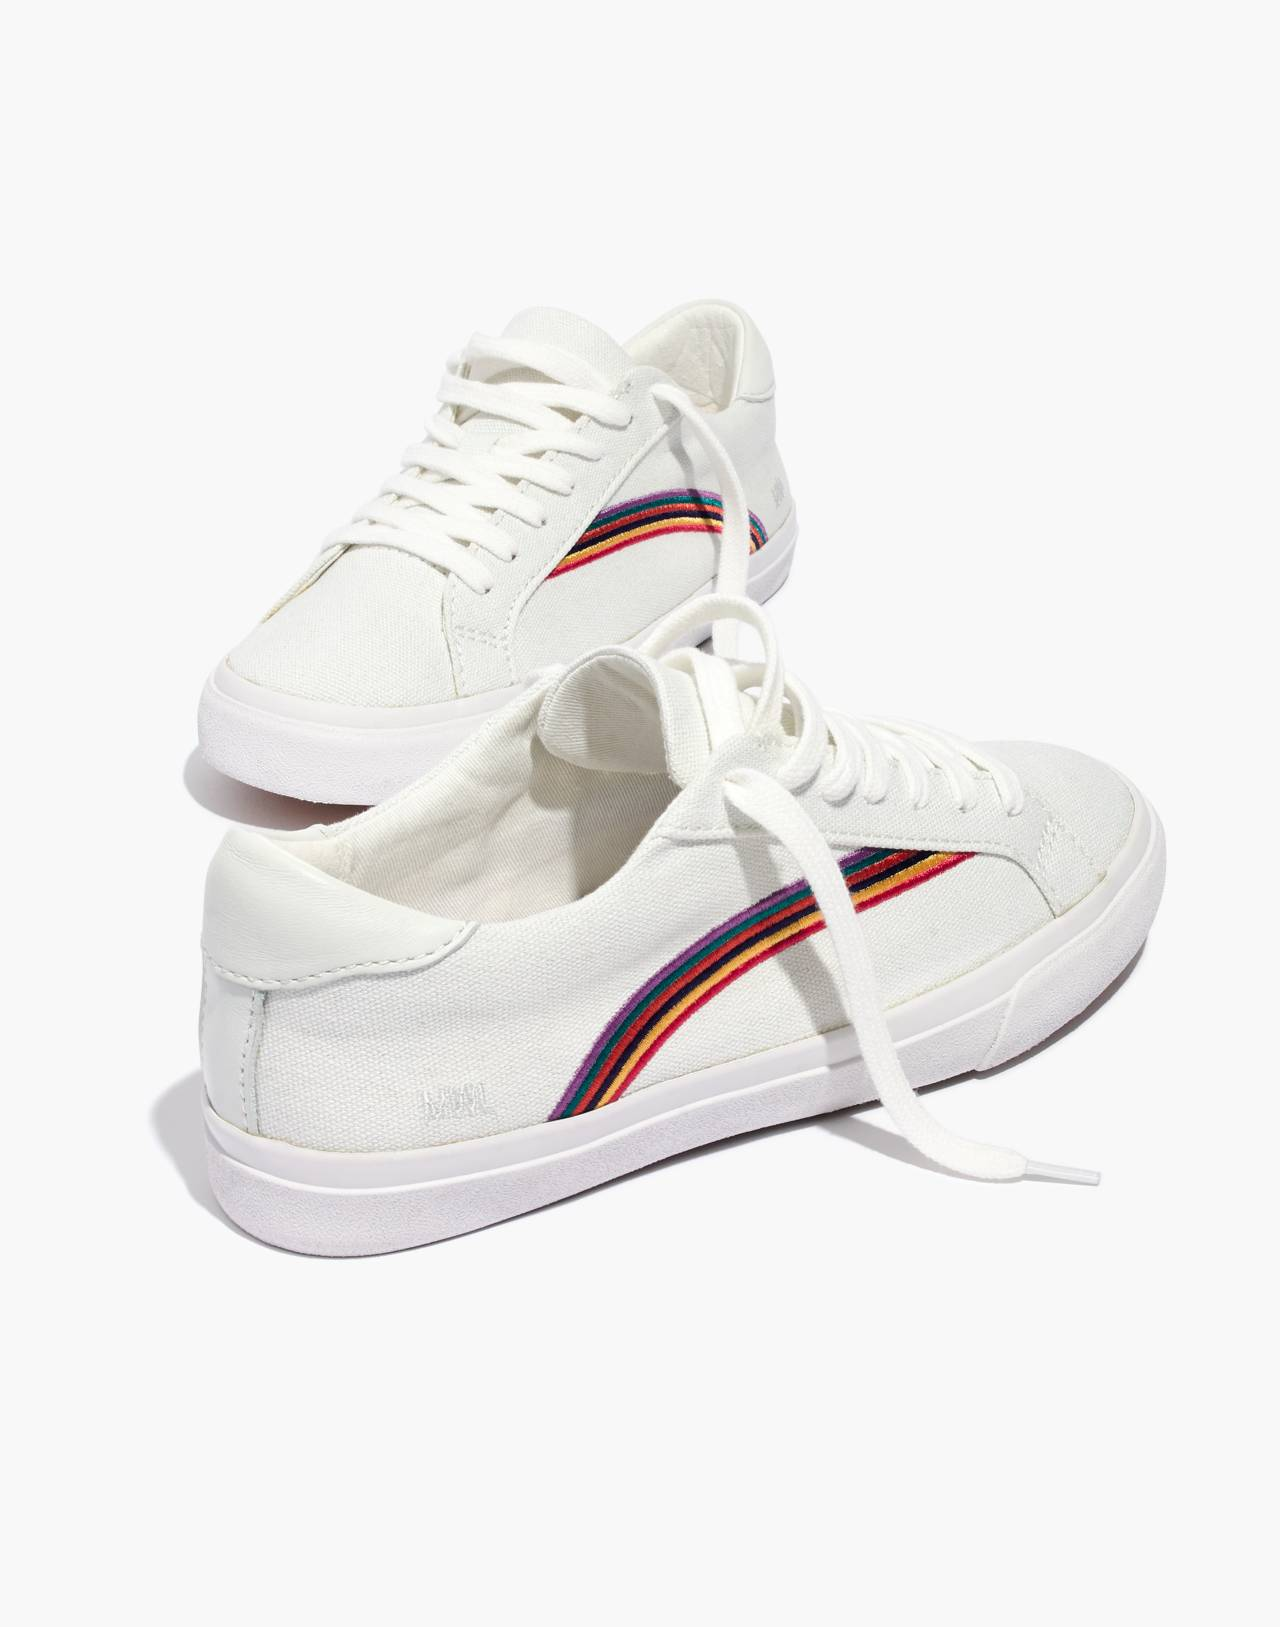 Women's Sidewalk Low-Top Sneakers in Rainbow Embroidered Canvas in off white/off white image 1